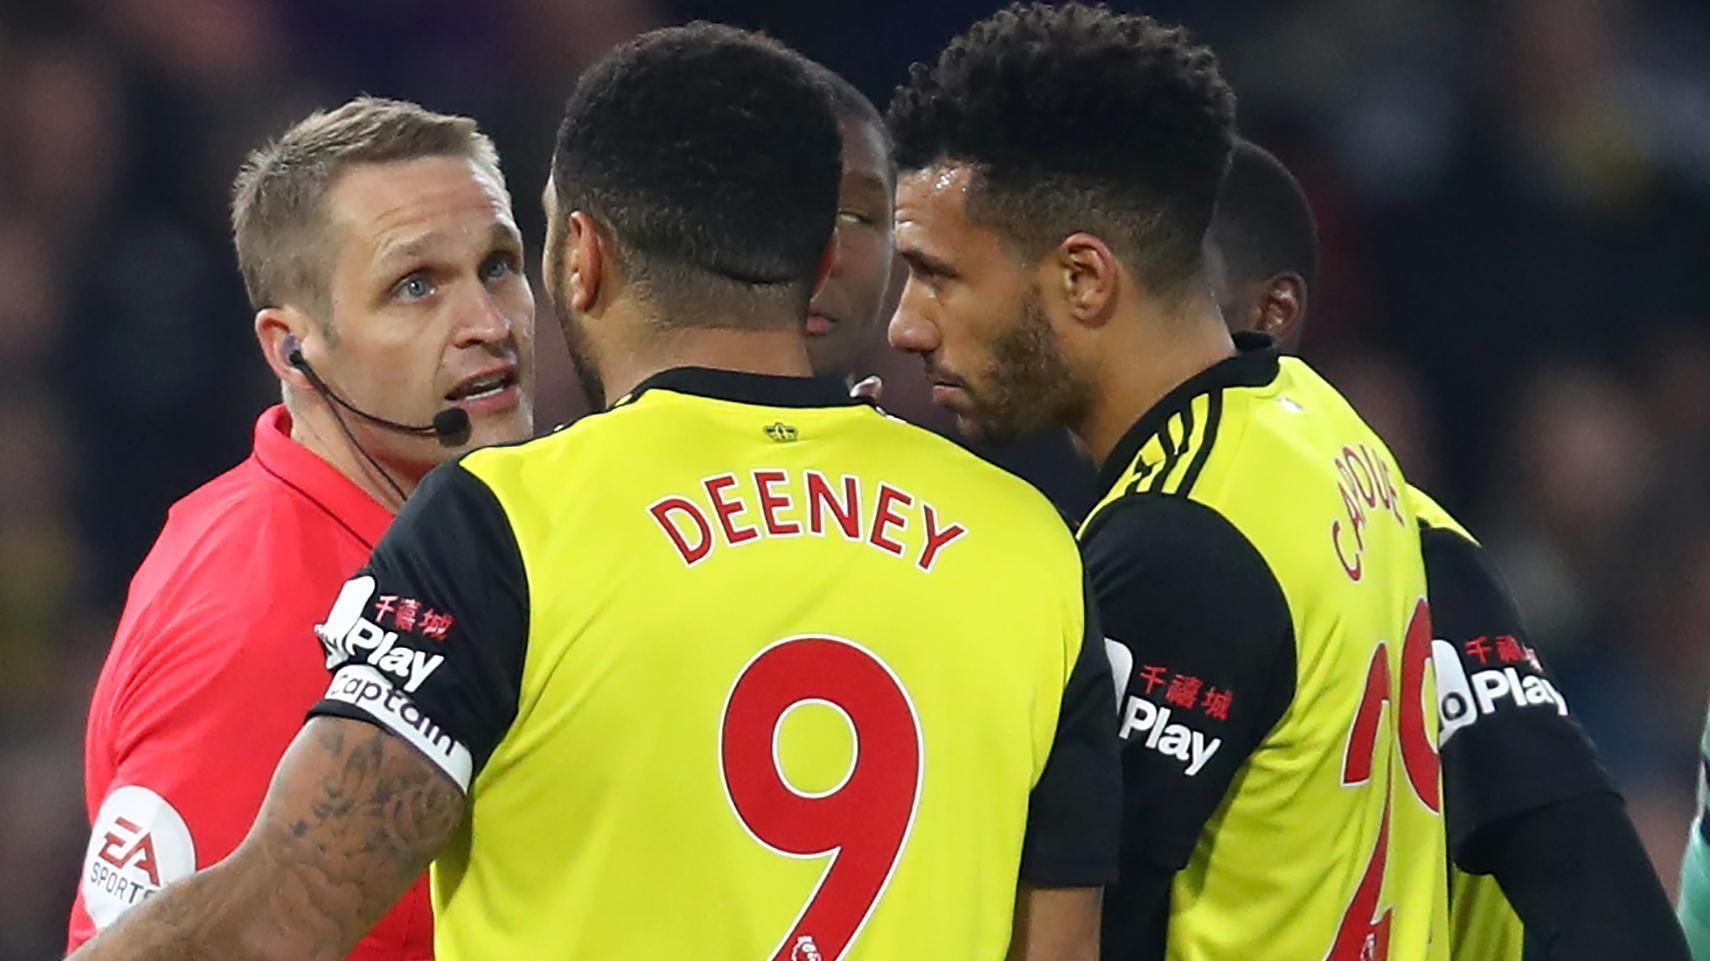 Watford's Deeney sees red for striking Torreira